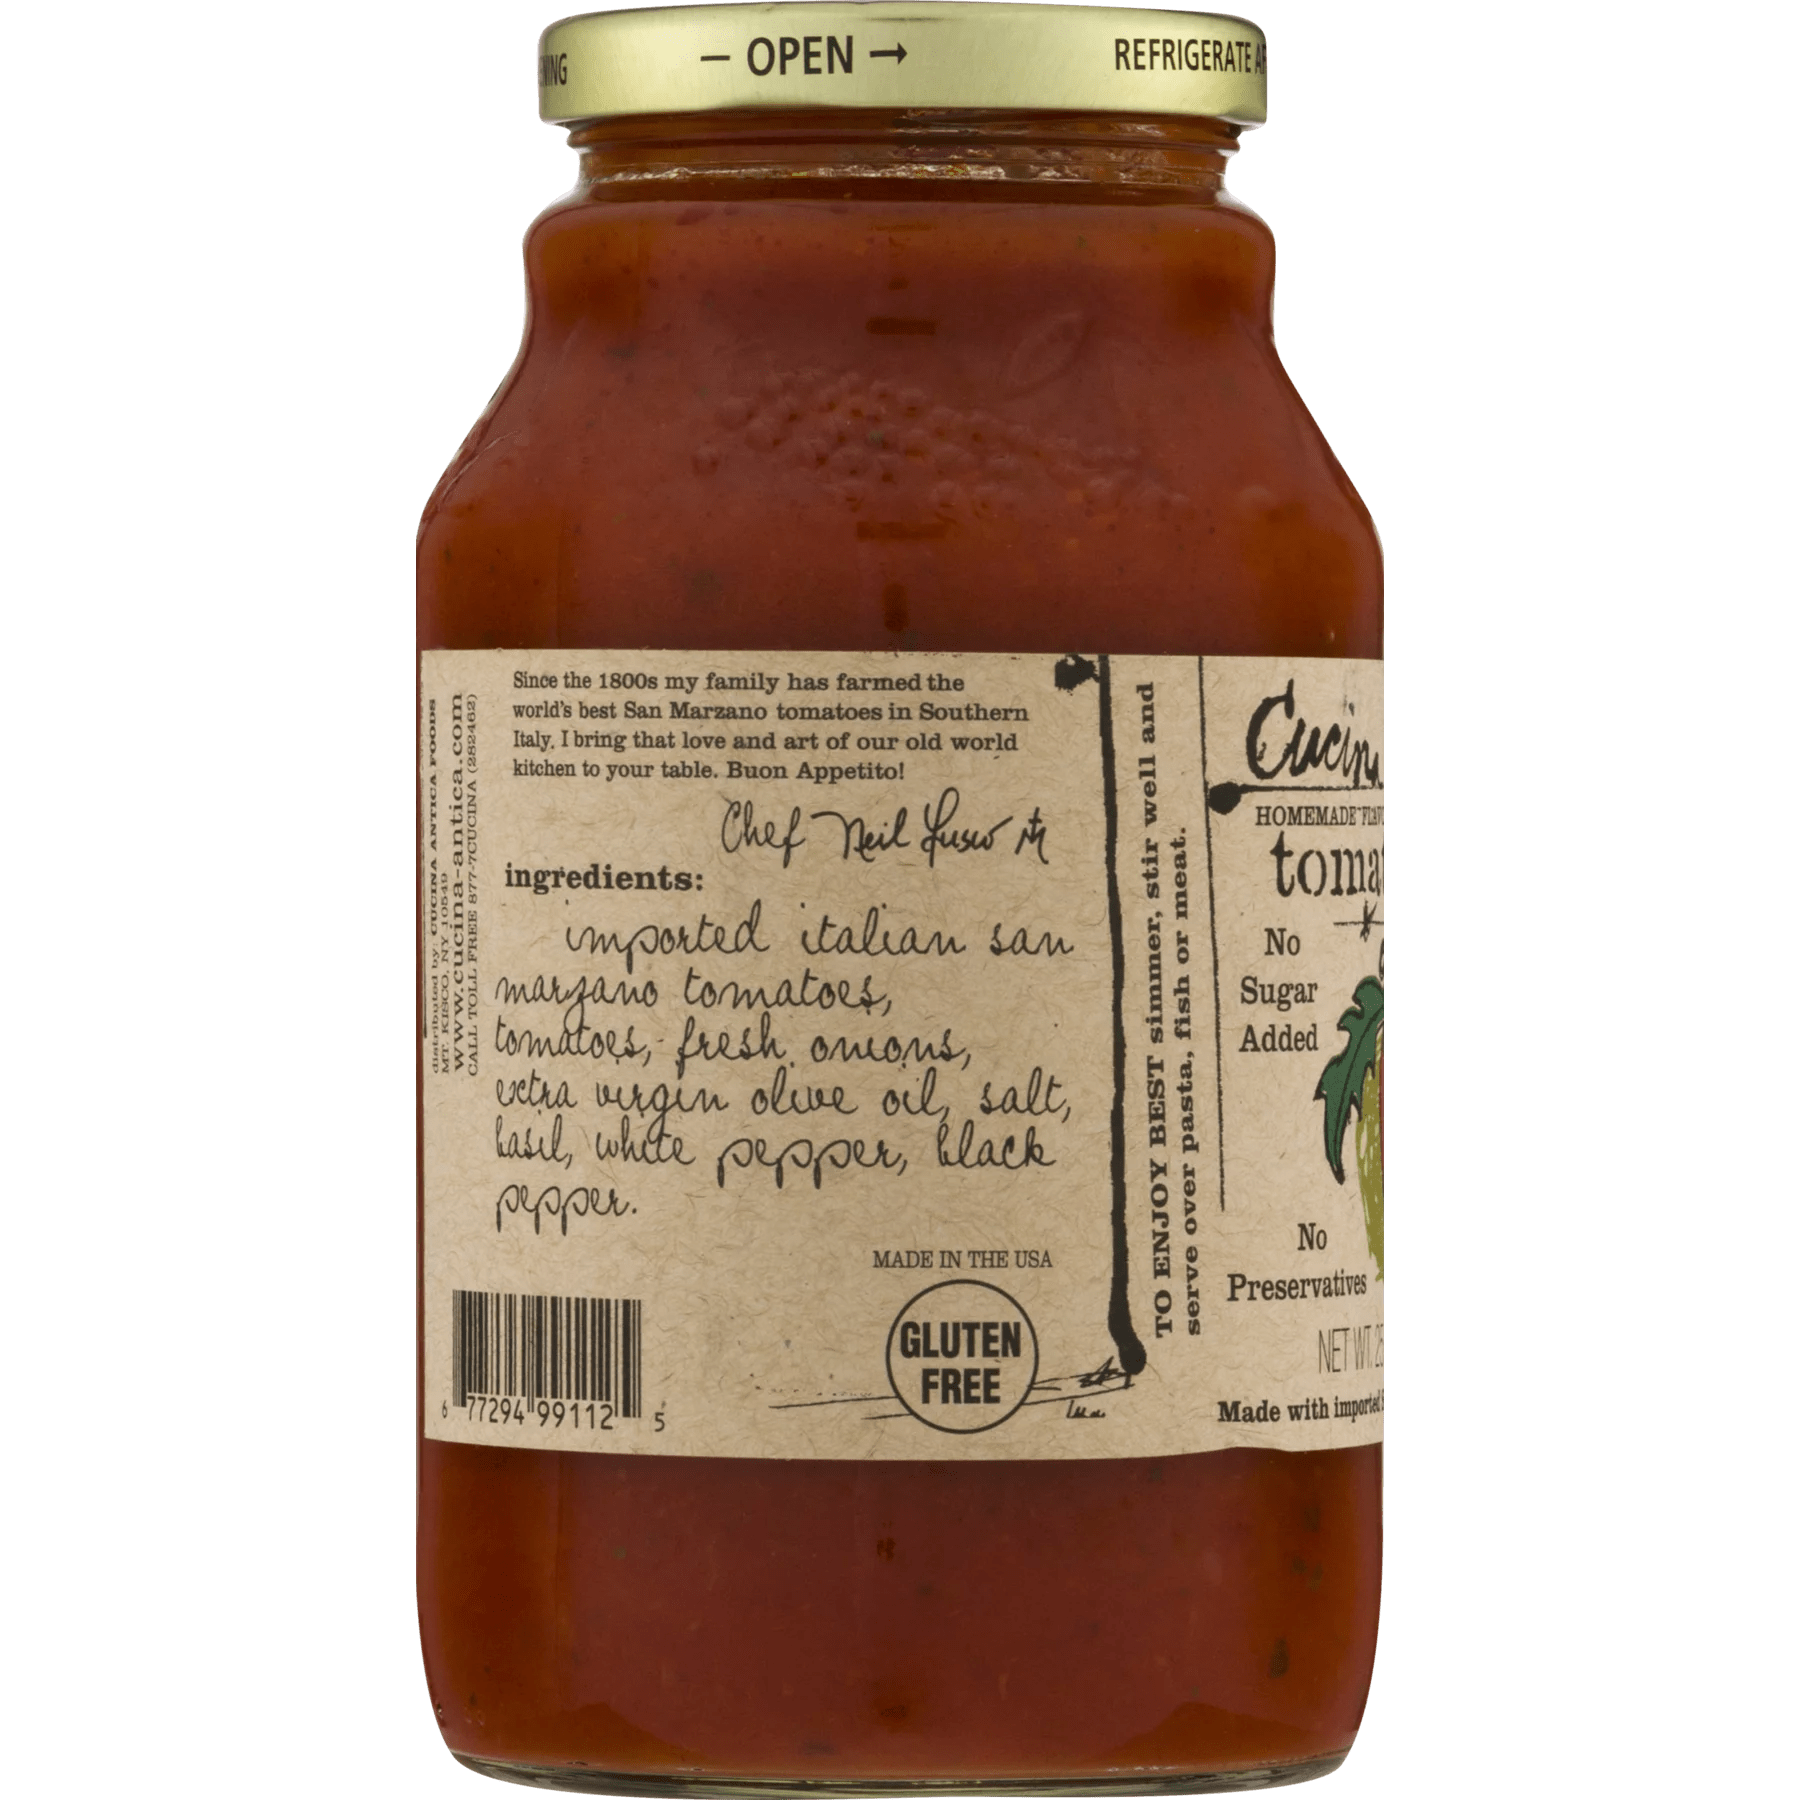 Cucina Antica Tomato Ketchup Cucina Antica All Natural Cooking Sauce Tomato Basil 25 Oz